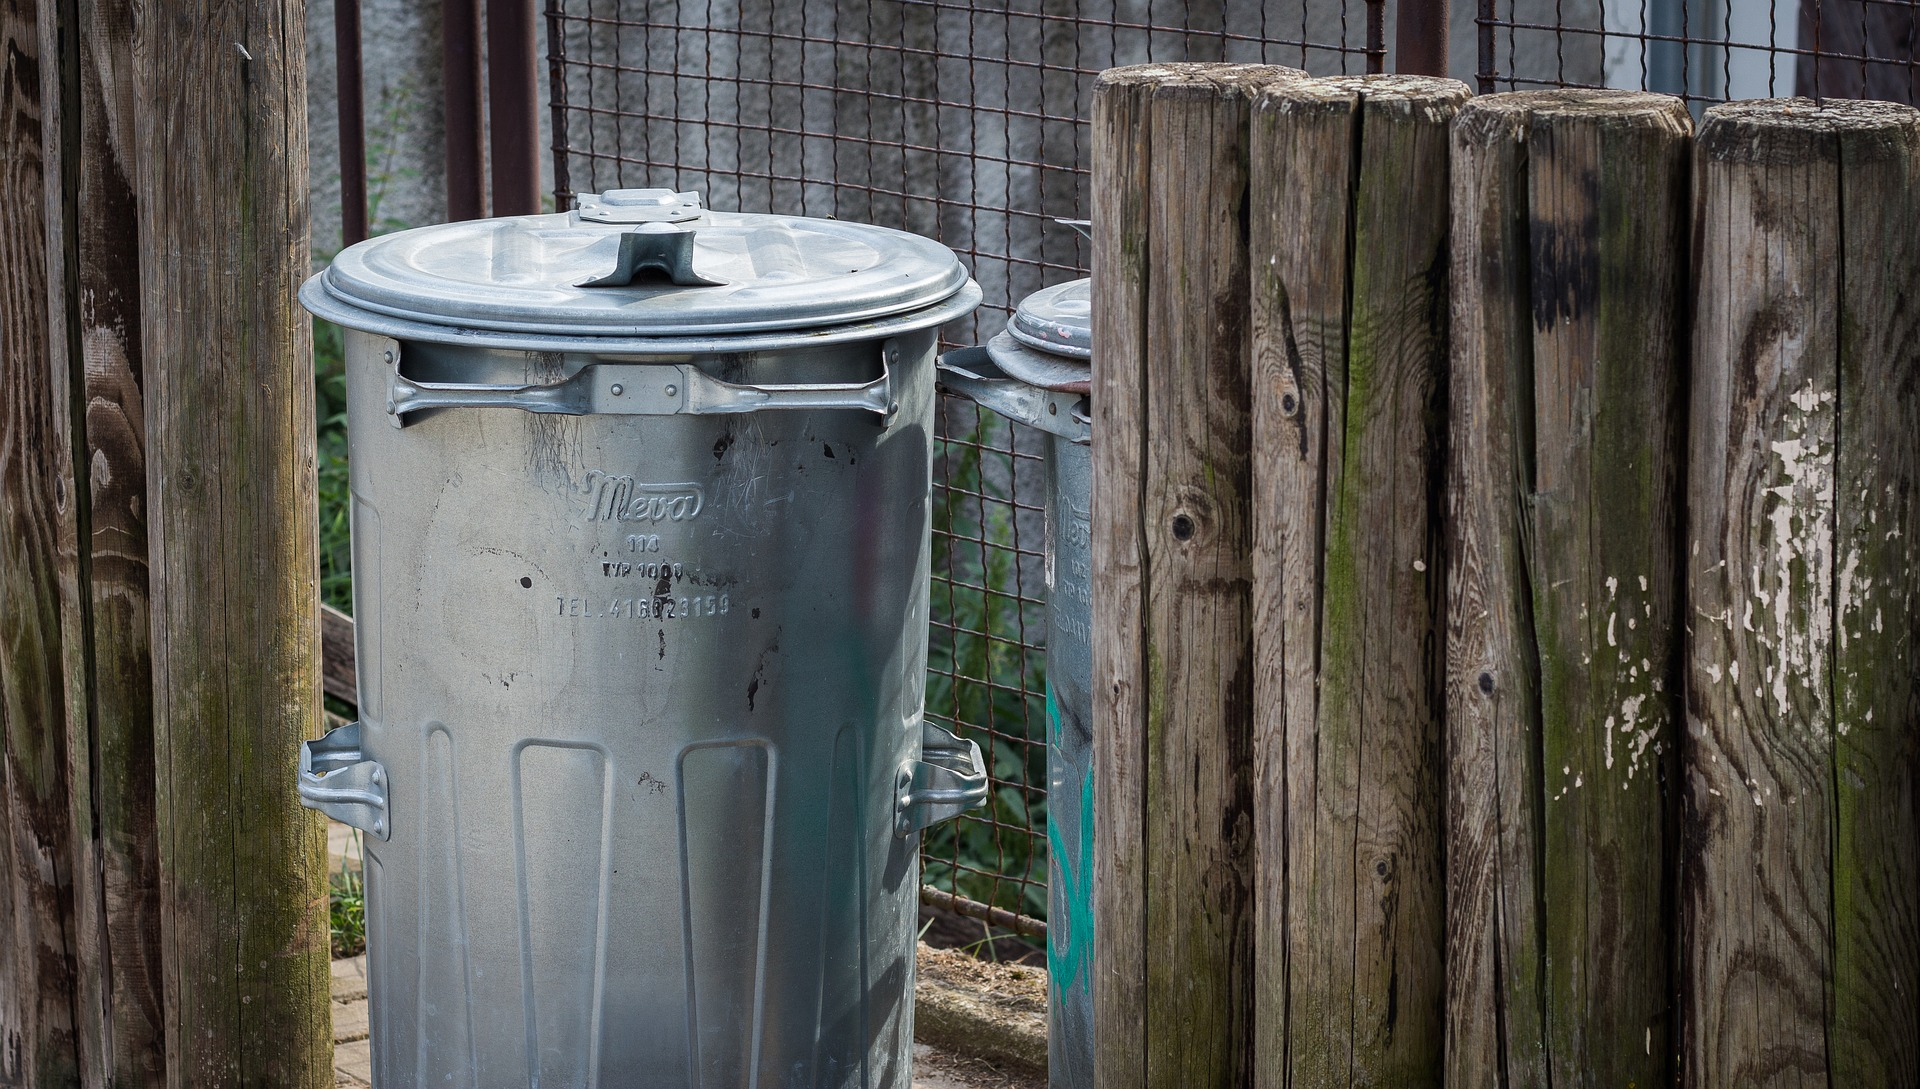 The 2020 Holiday Waste Guide's featured image